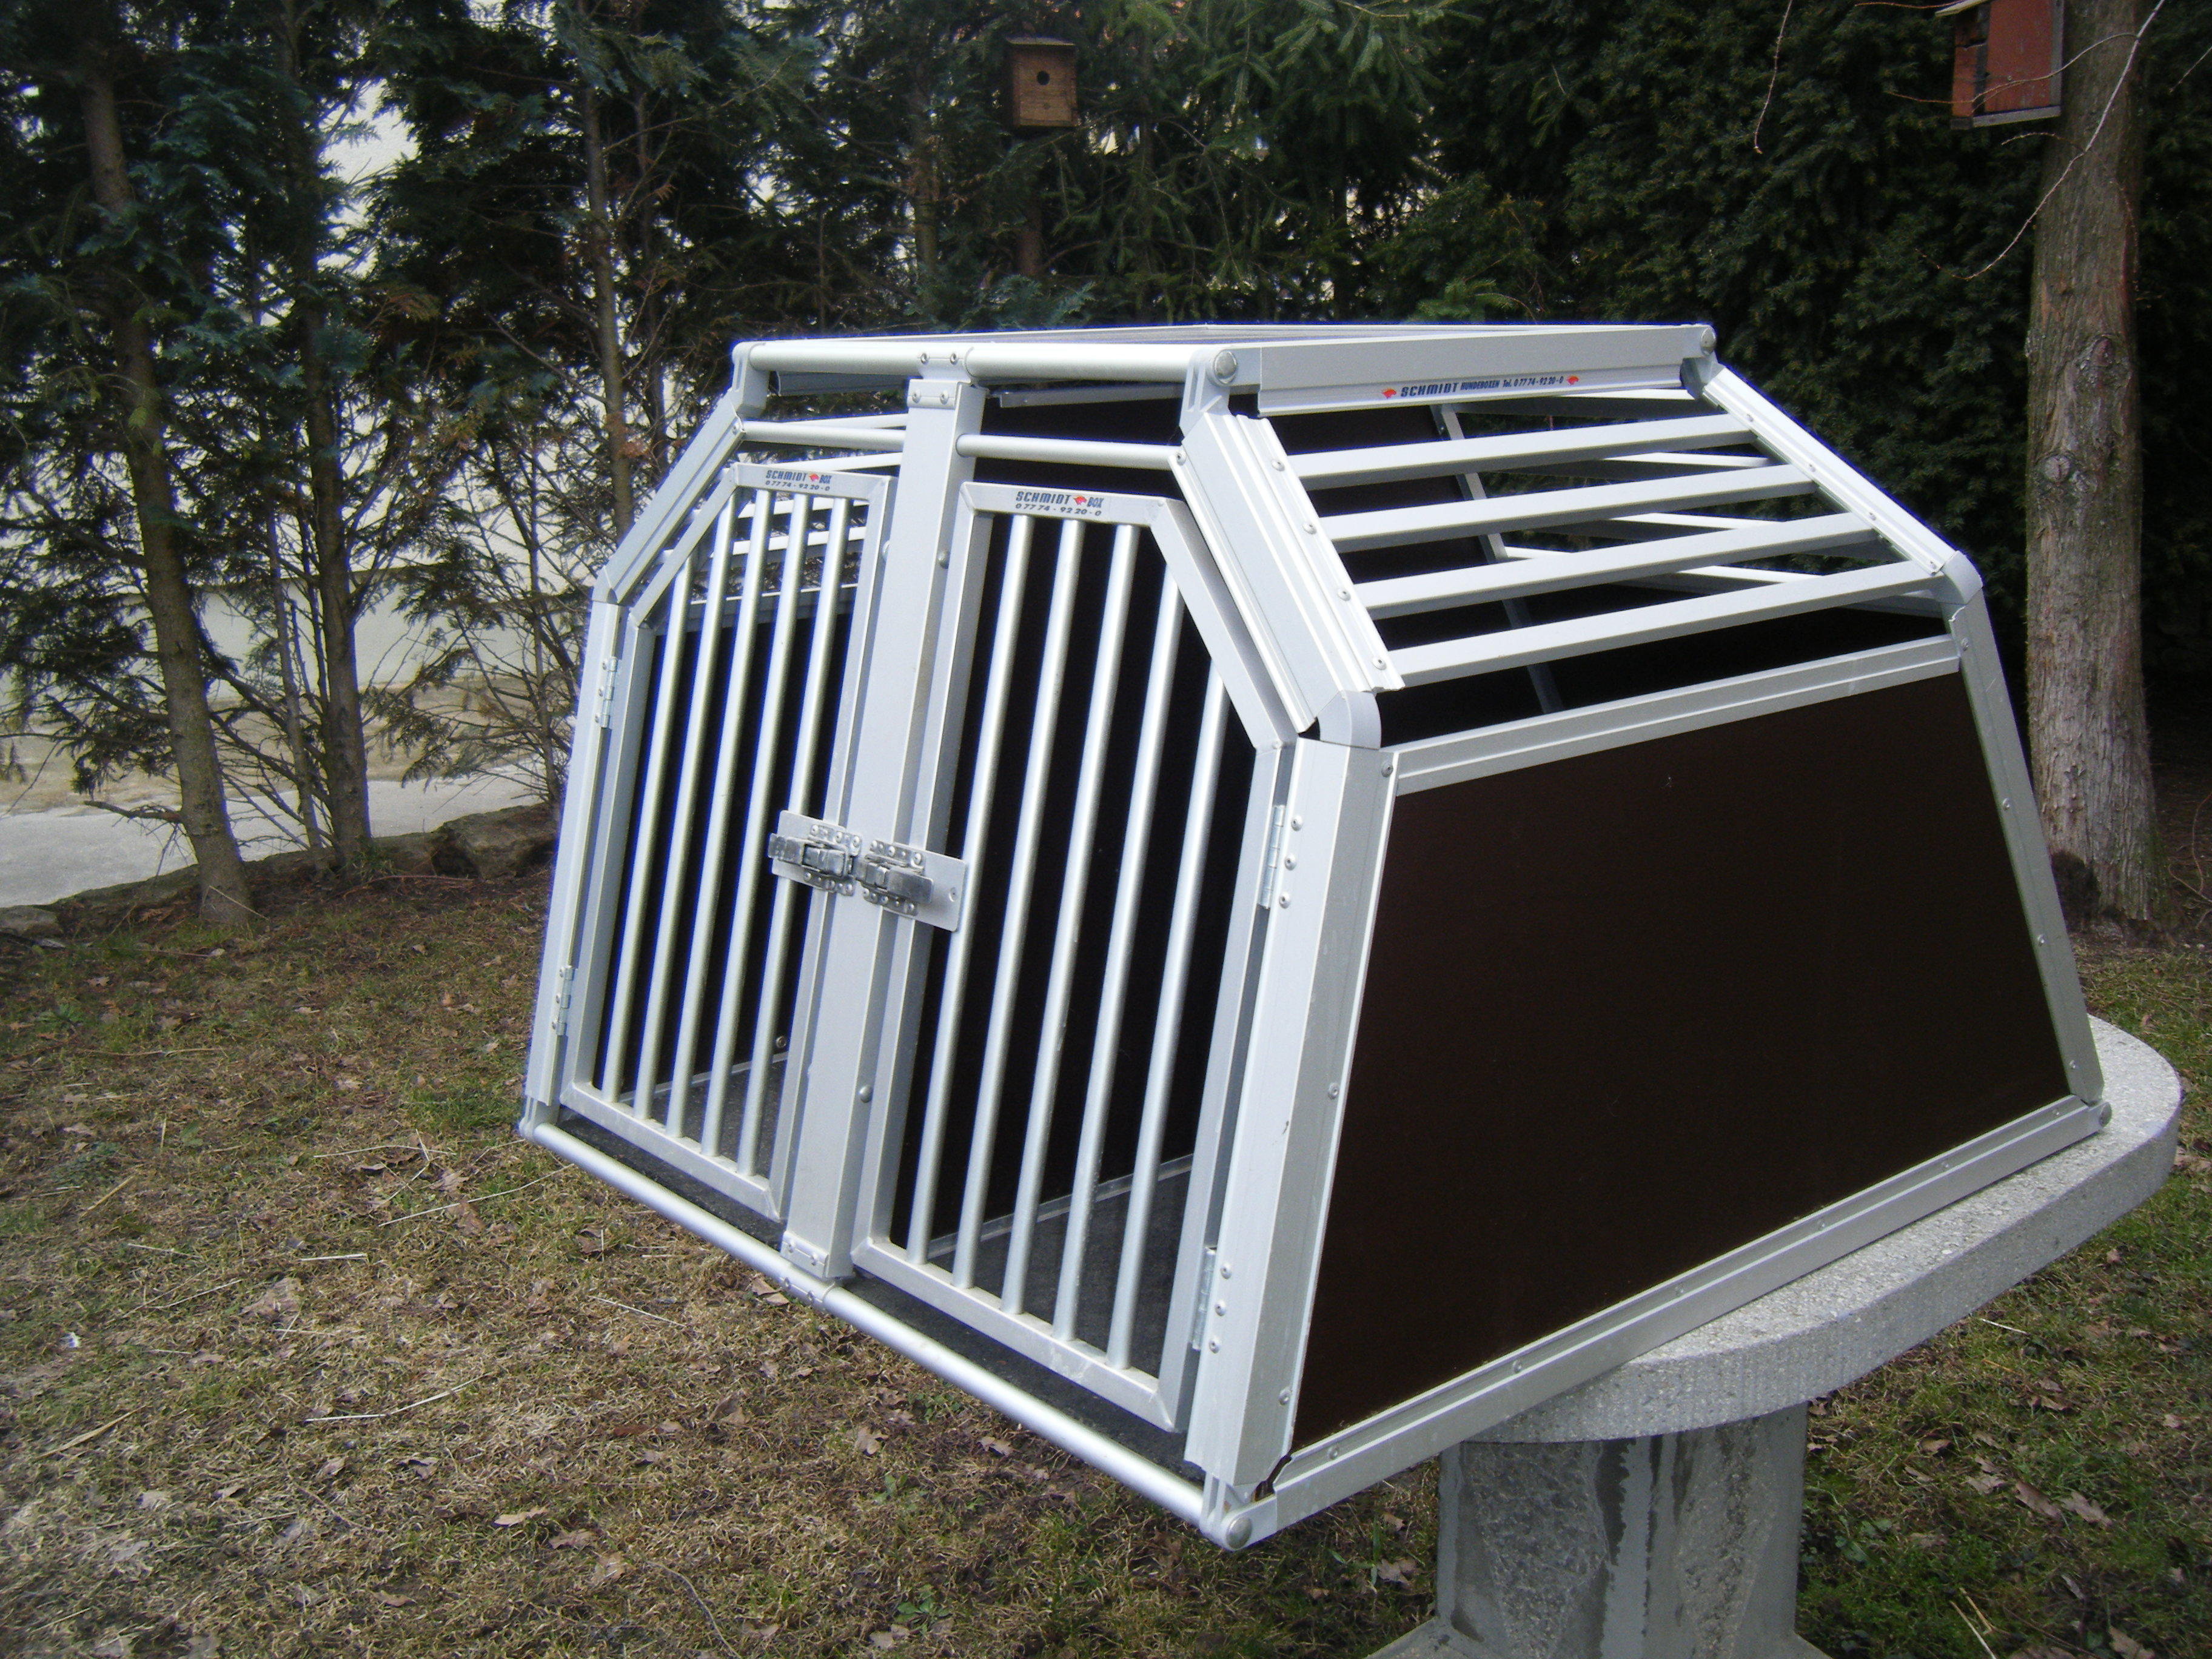 hundetransportbox gulliver in sirksfelde tiere. Black Bedroom Furniture Sets. Home Design Ideas